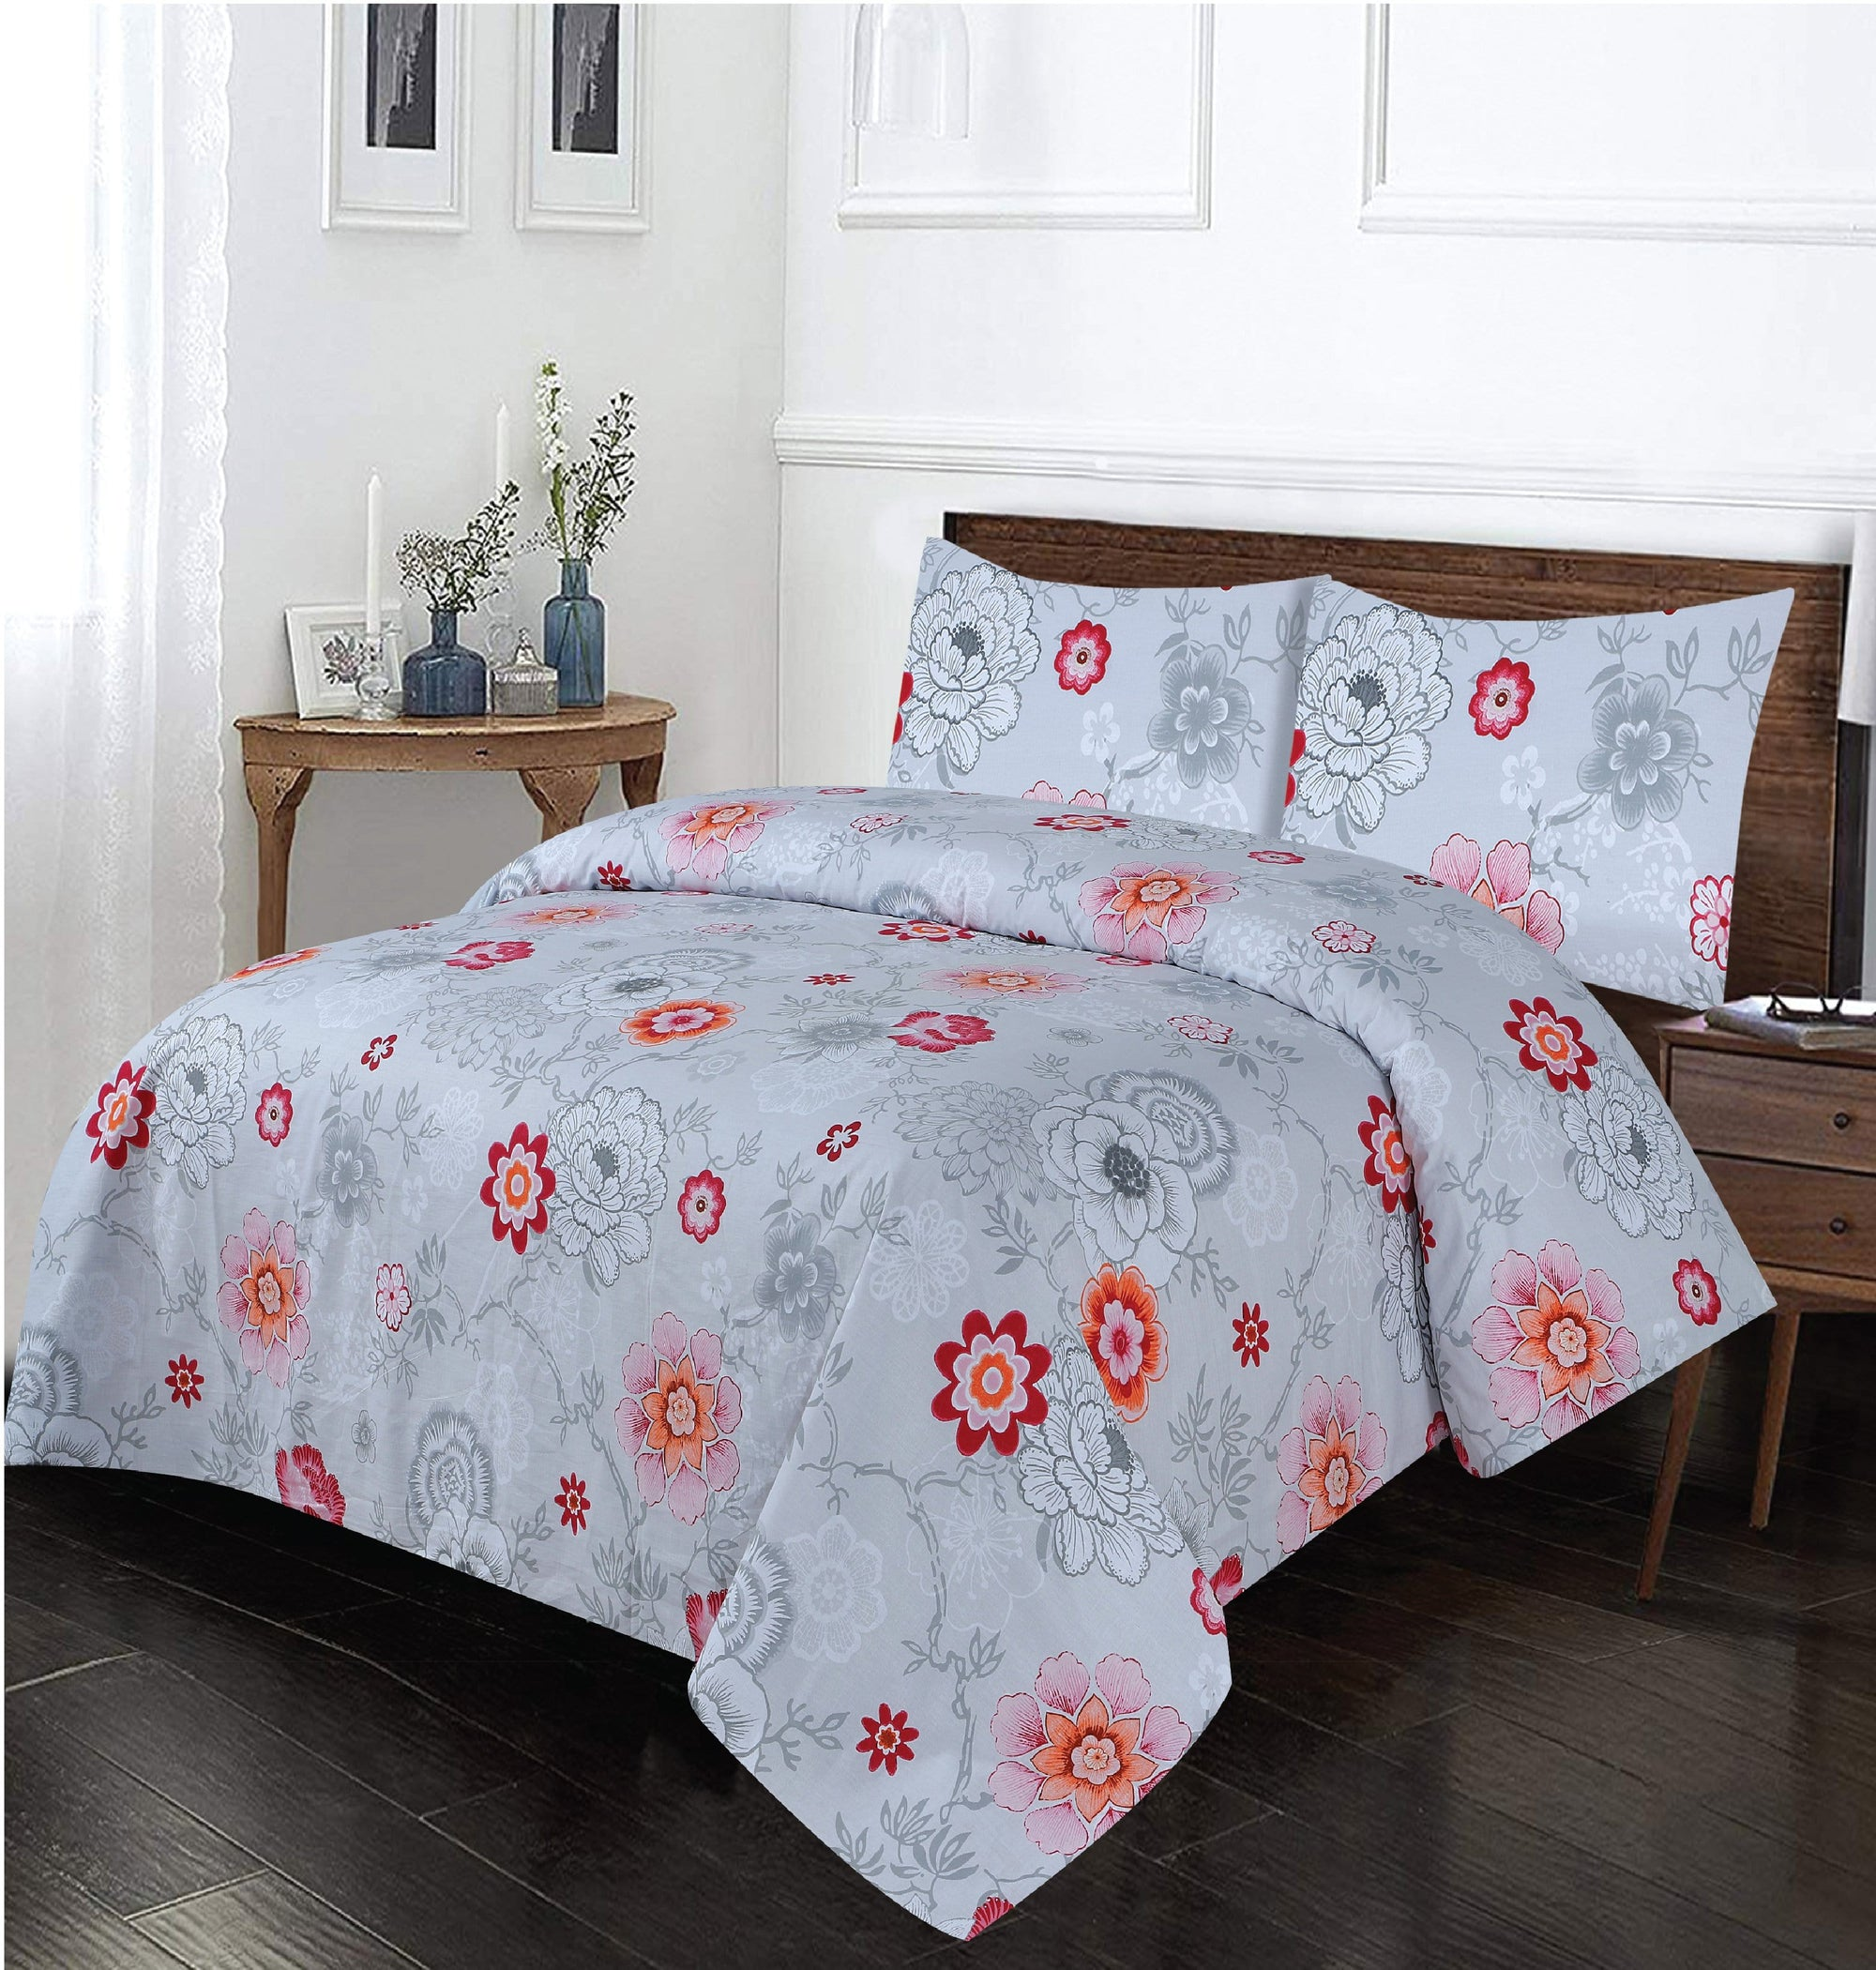 Grace D260-Cotton PC King Size Bedsheet with 2 Pillow Covers.